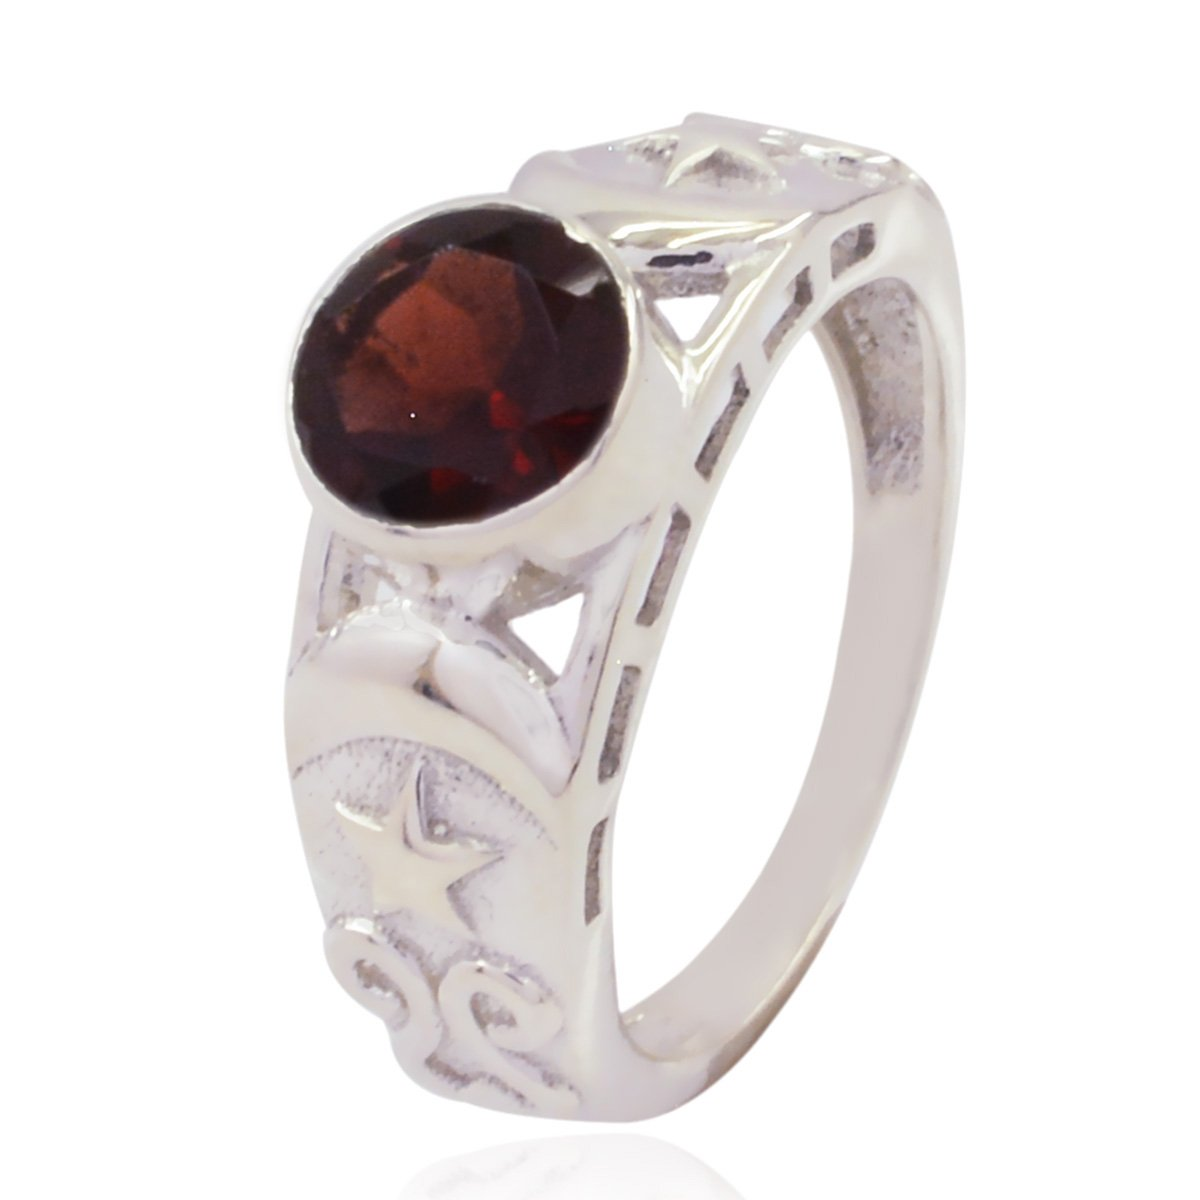 925 Silver Red Garnet Lucky Gemstone Ring Good Jewellery Items Gift for Graduation Good Rings Lucky Gemstone Round Faceted Garnet Ring